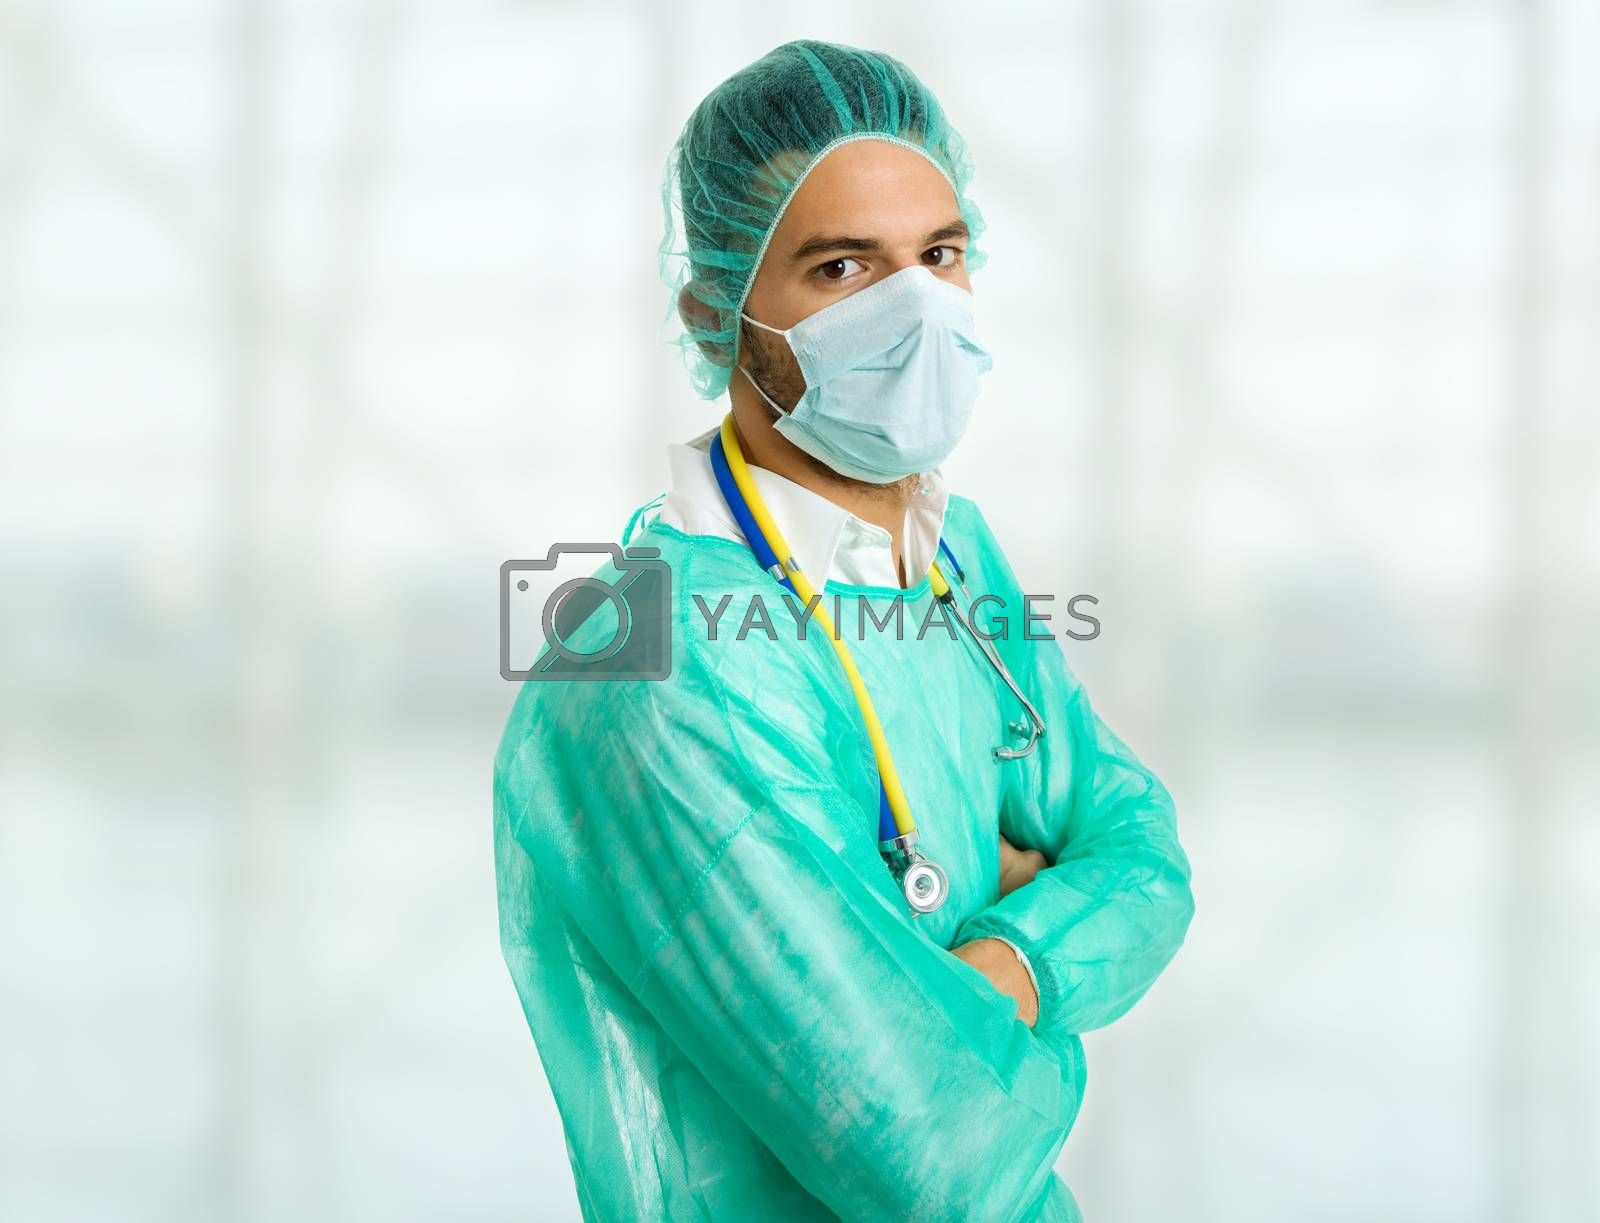 Royalty free image of doctor by zittto